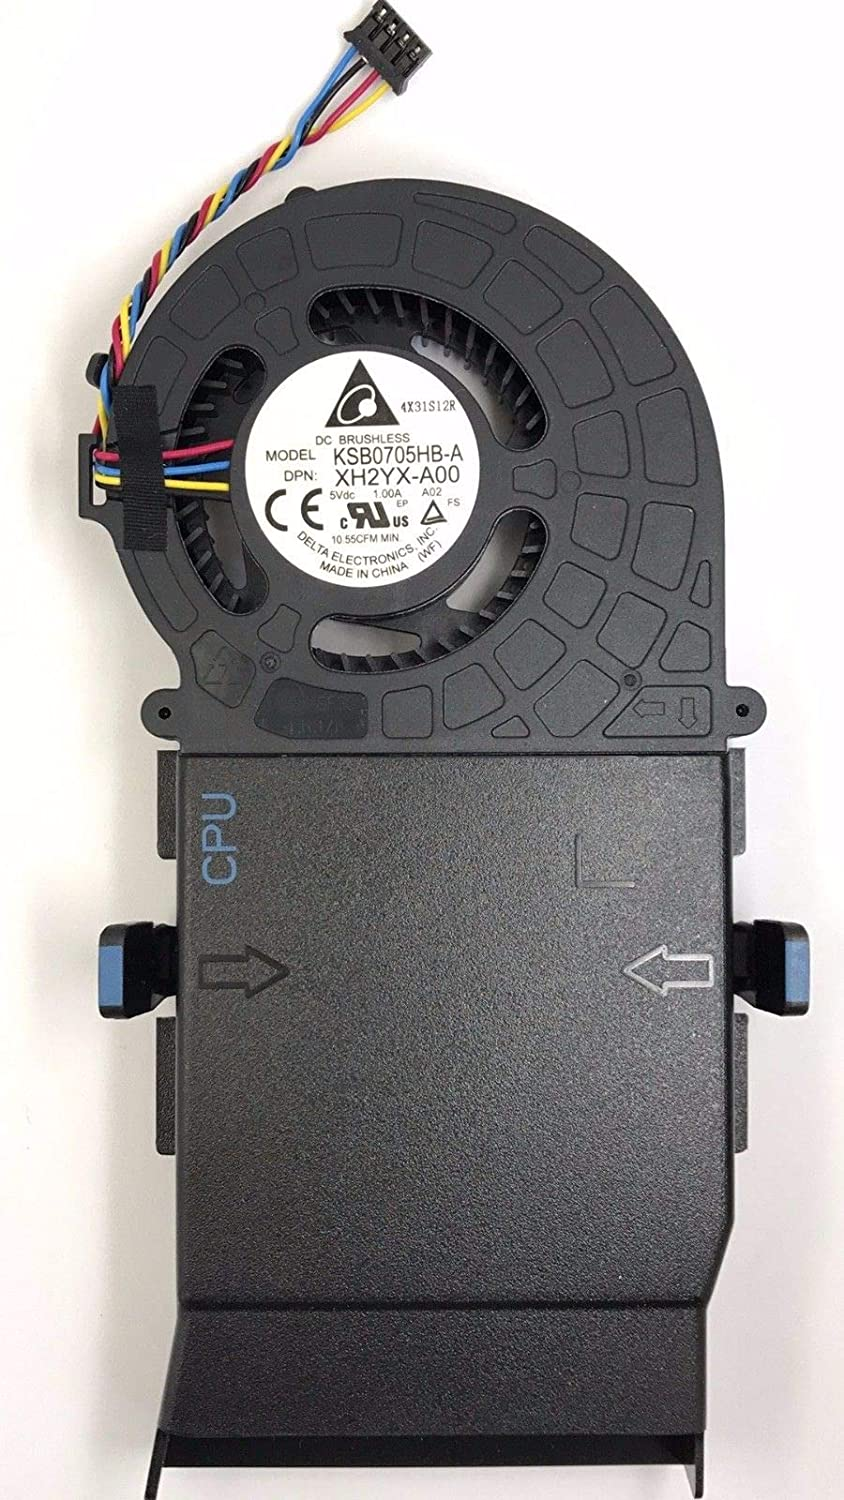 New For Dell Alienware Alpha R2 06XNNH KSB0705HB-A-6XNNH-A00 GPU Cooling fan